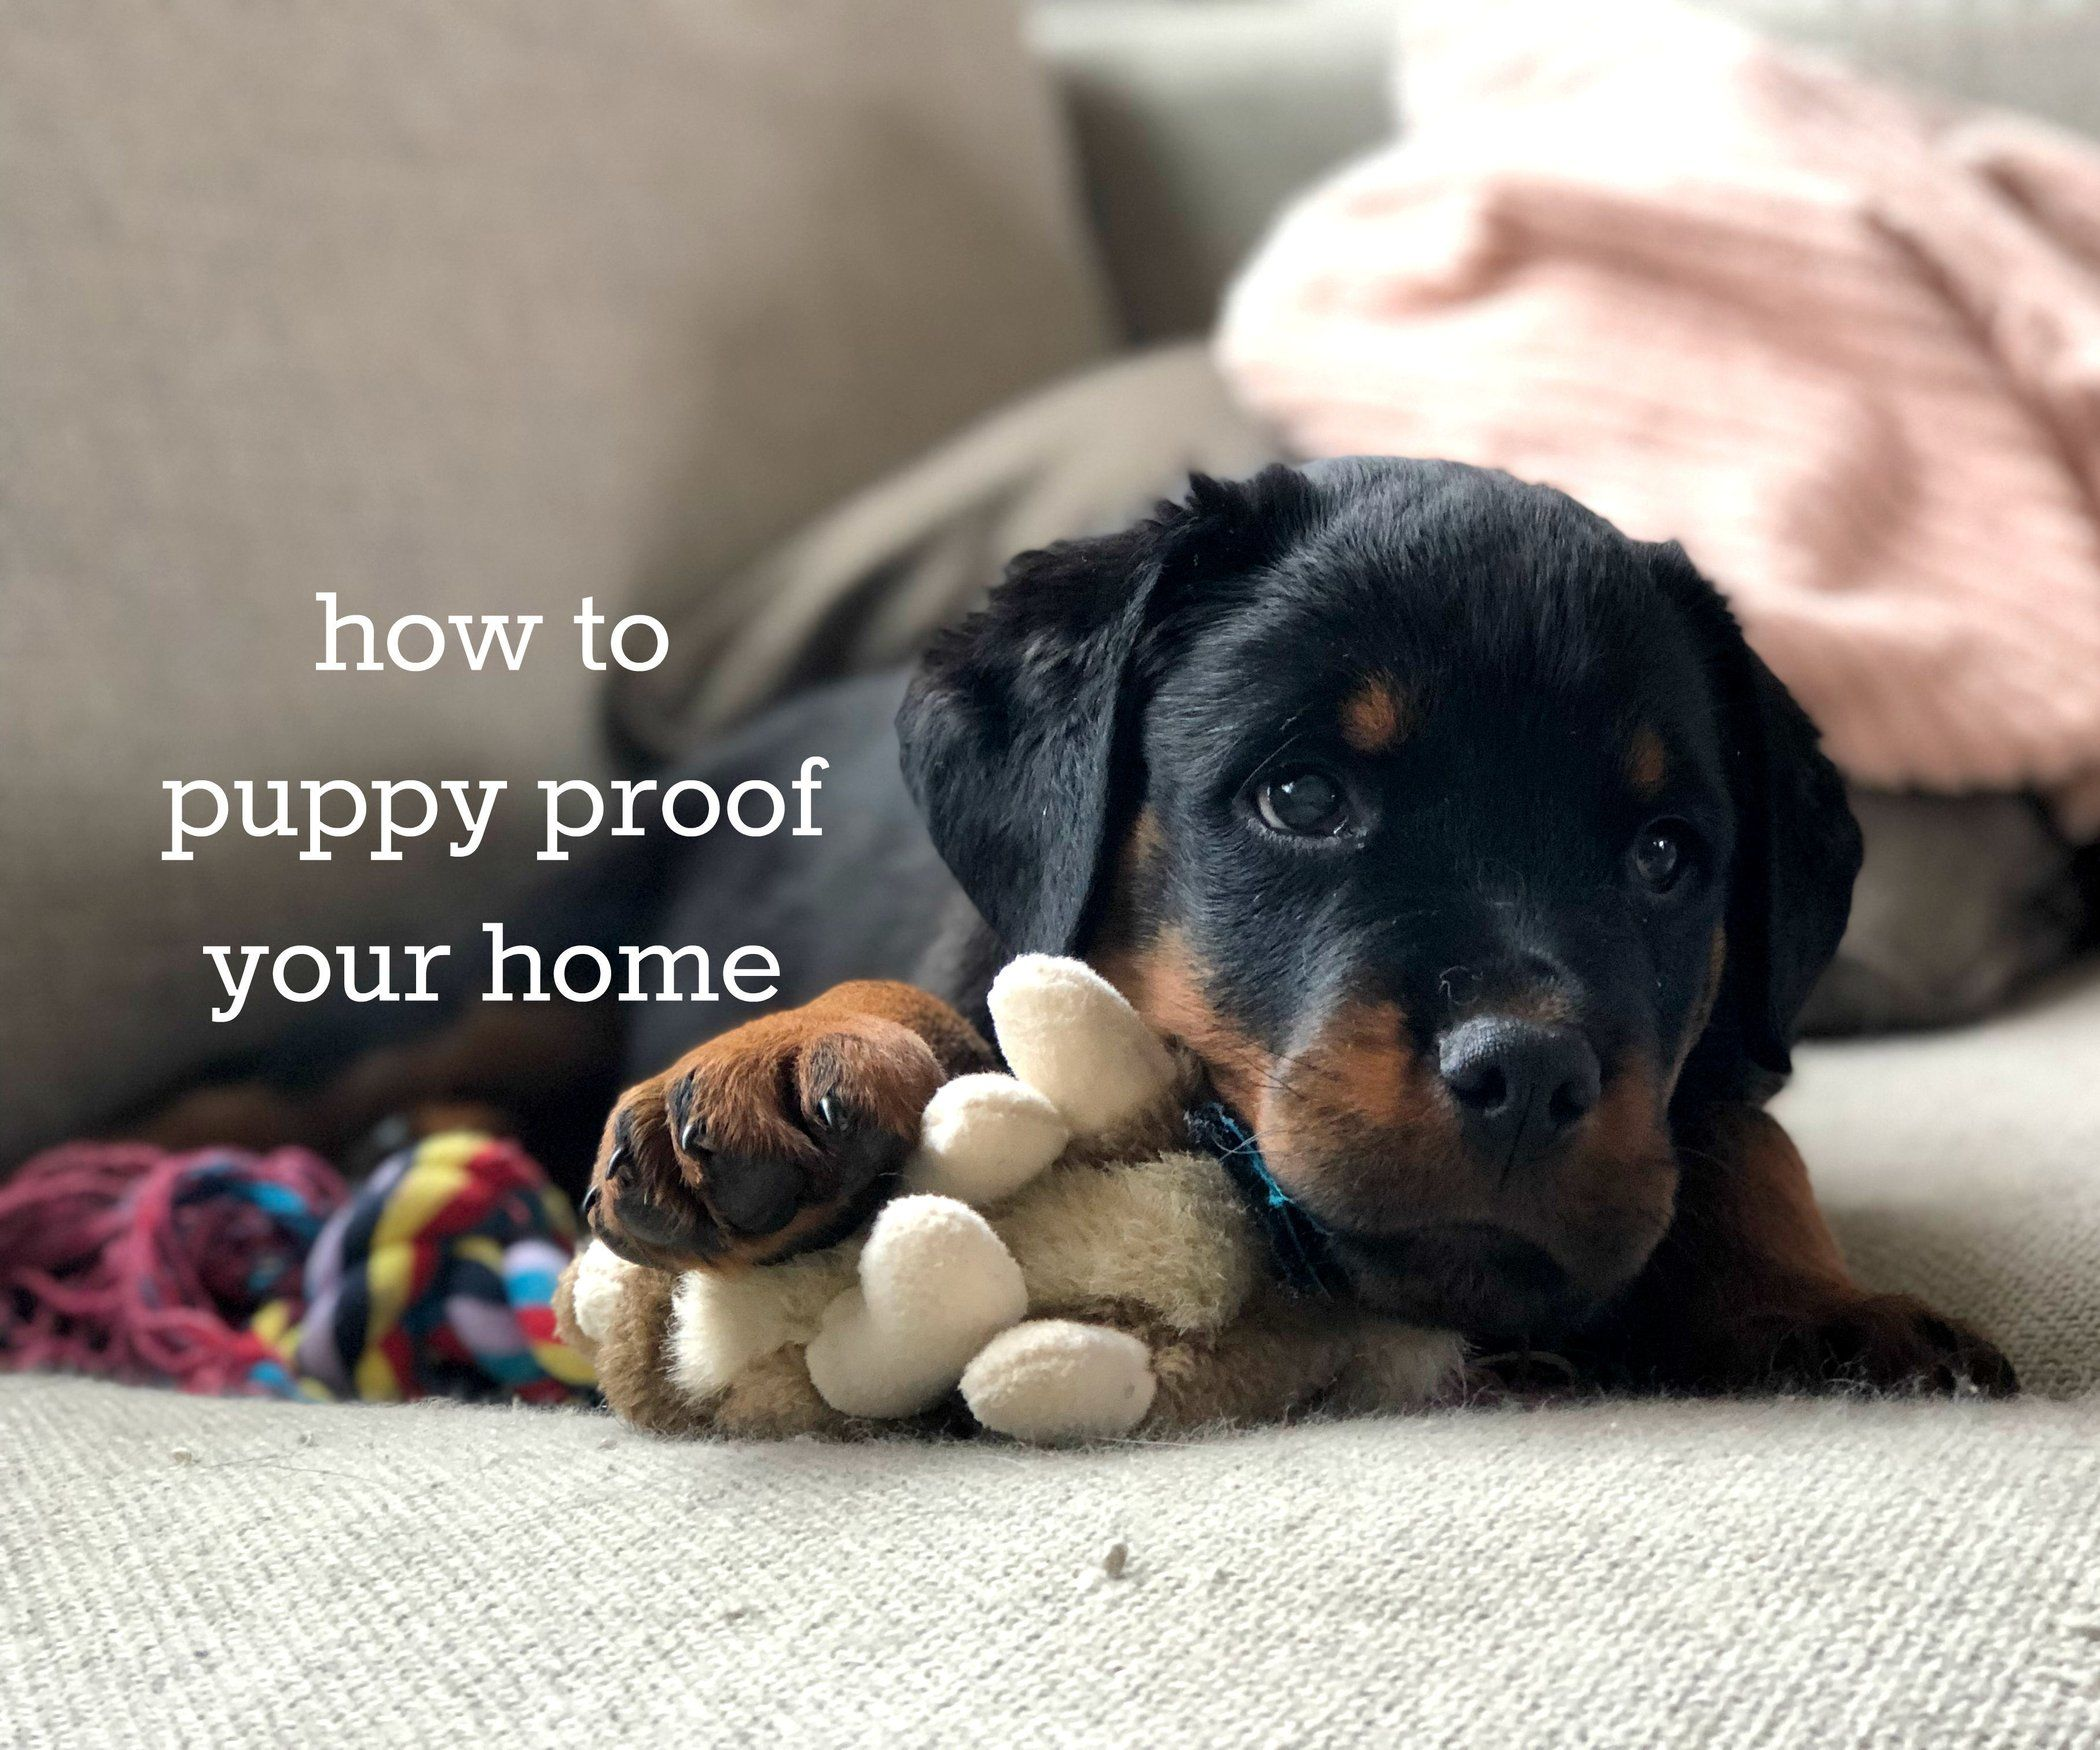 How to puppy proof your home puppy proofing puppies